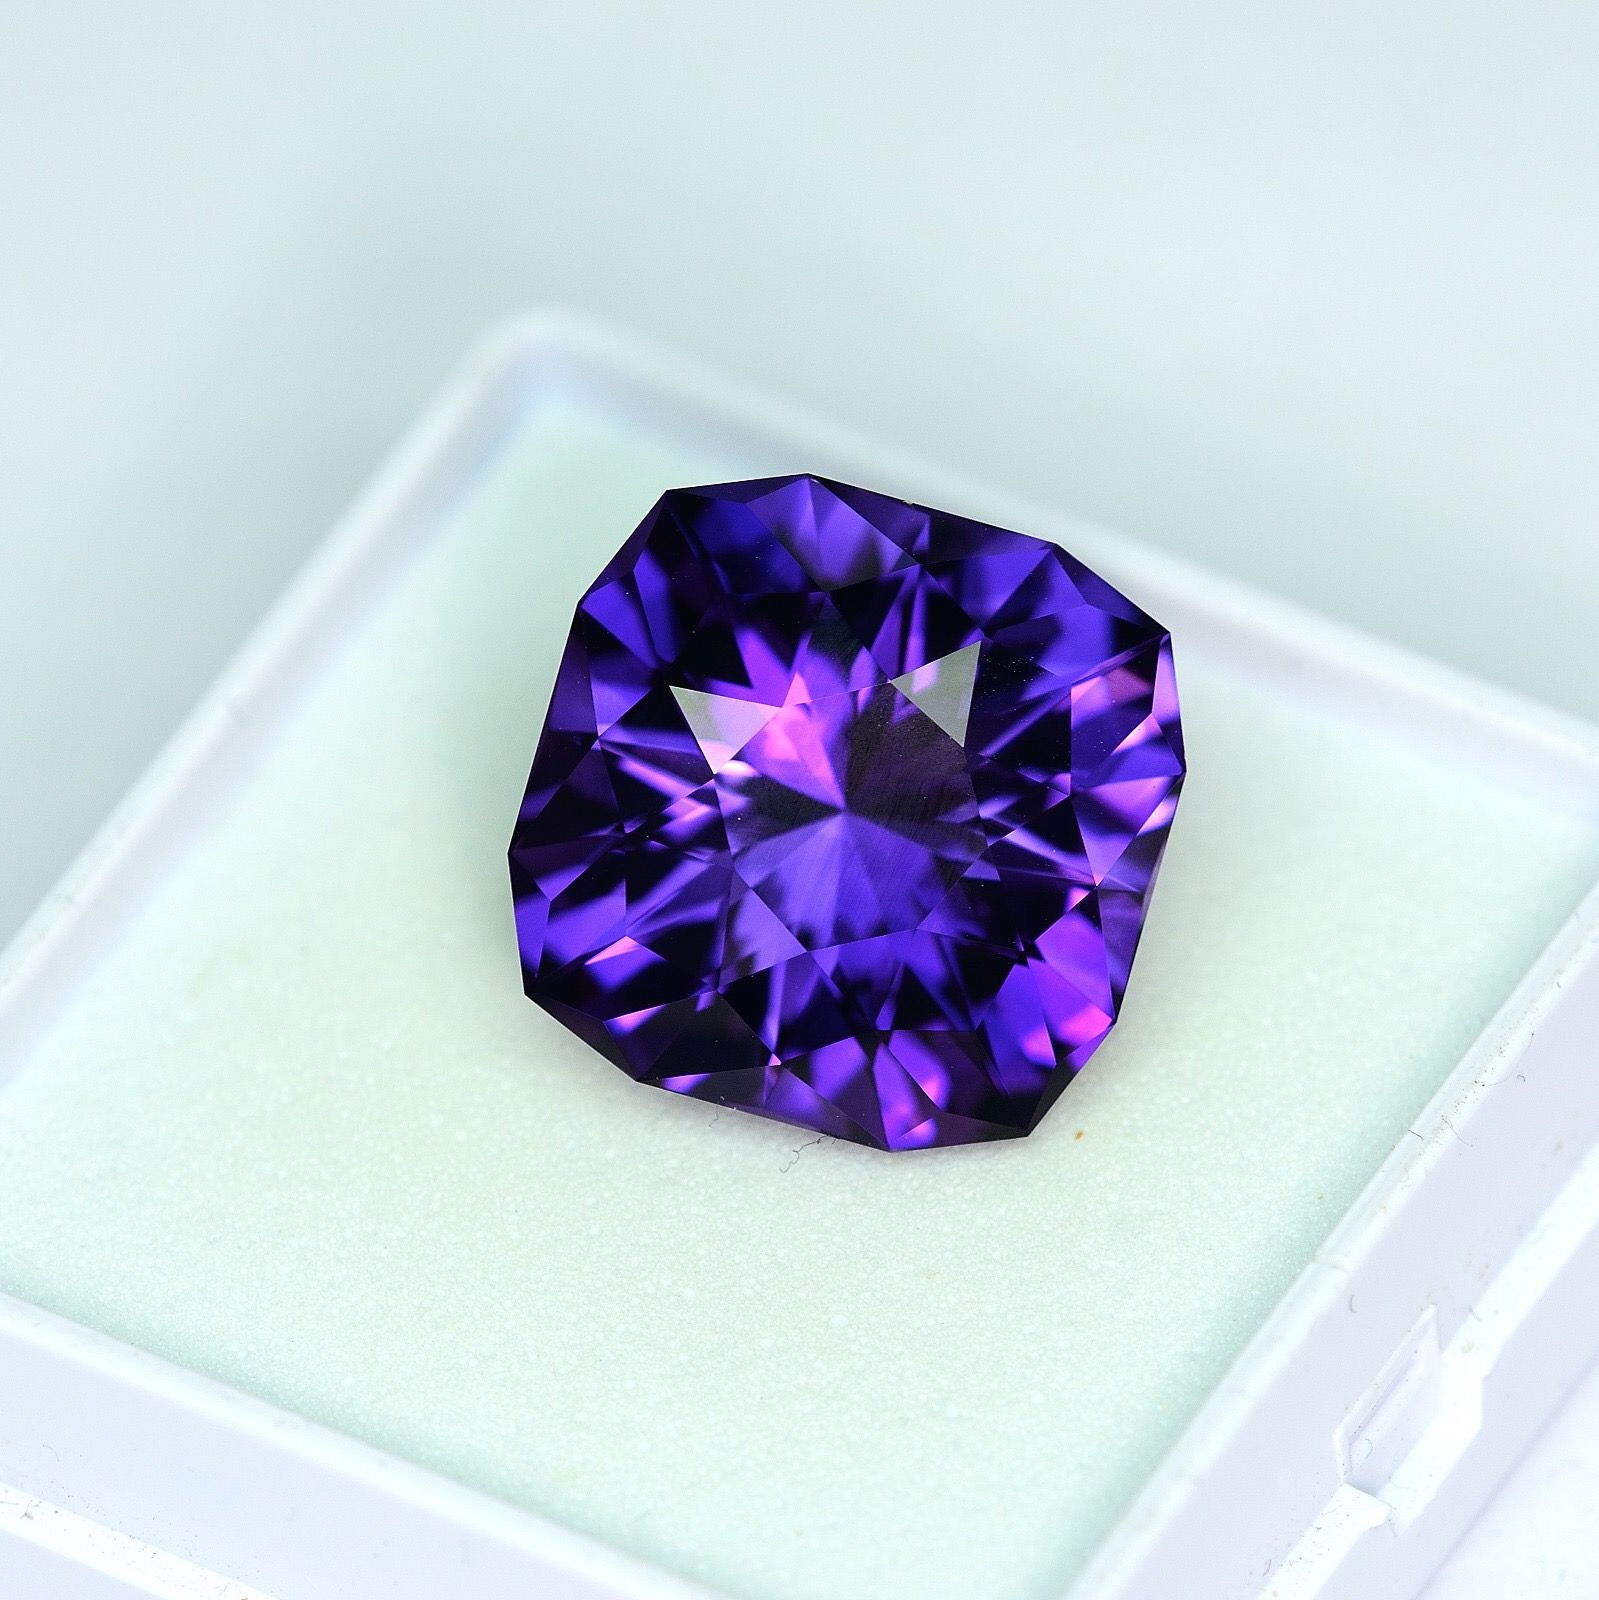 once you purple tanzanite vs see lilac not blog will gems most topaz lighter is color gemstone an that zircon a but inexpensive more welcome to blue beautiful n store medium today online affordable than the rare and coins for light